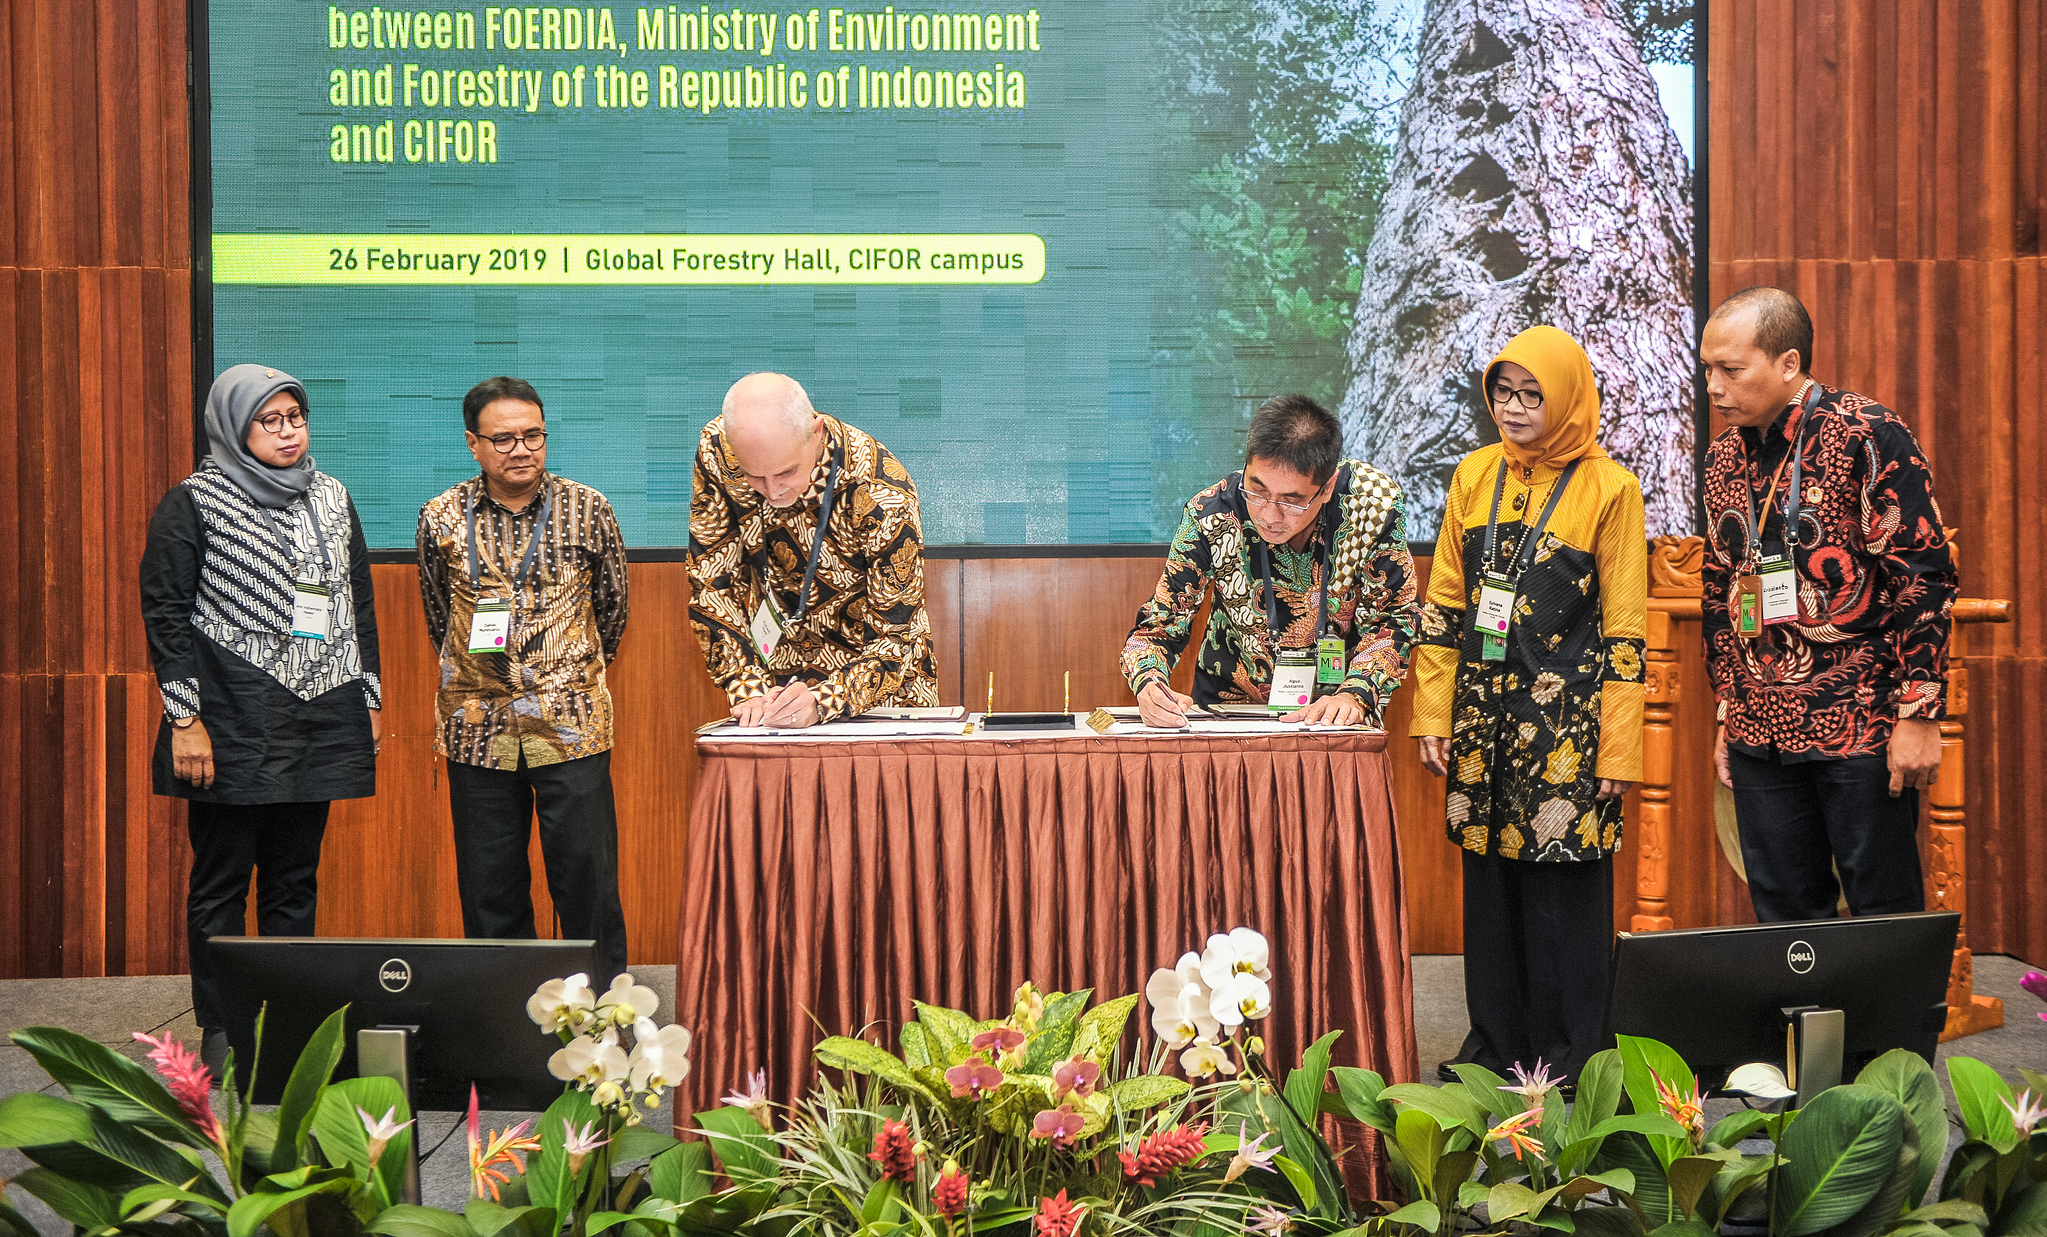 CIFOR and Indonesia government renew contract to protect forests